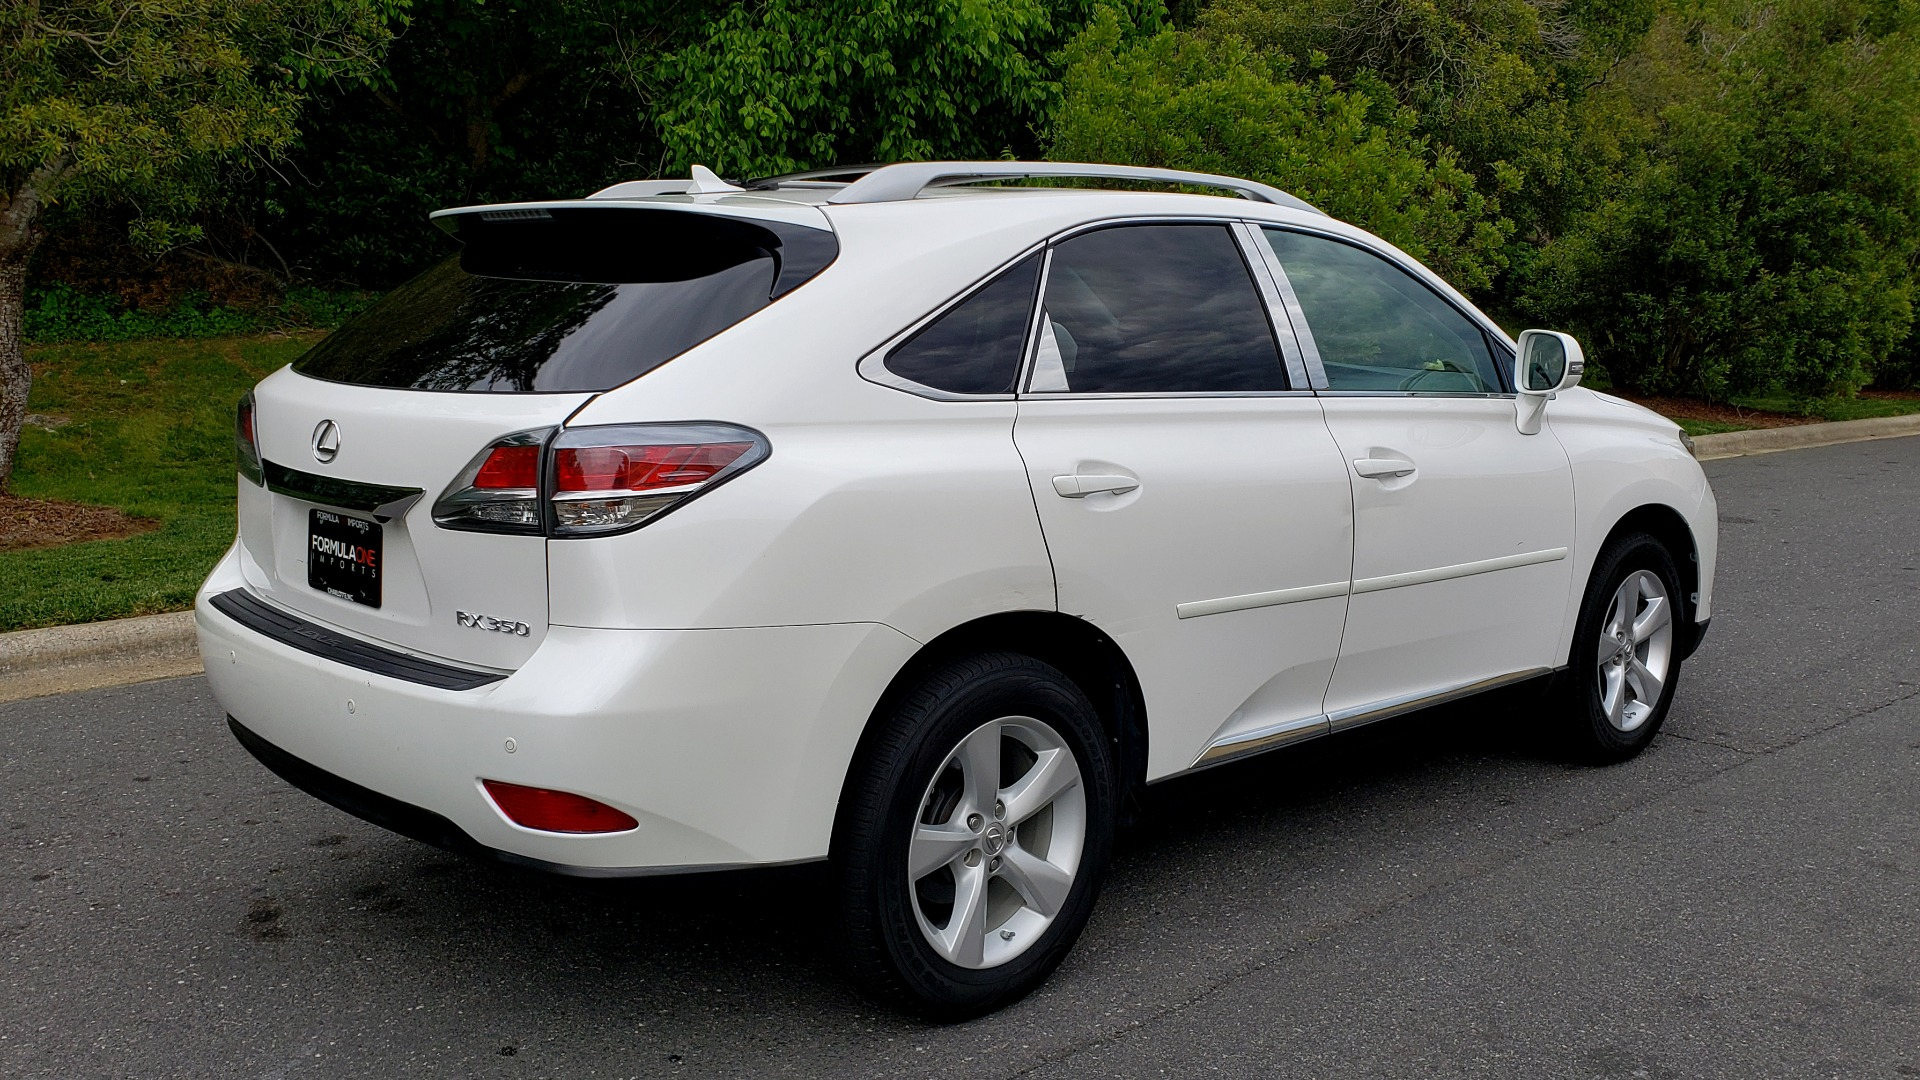 Used 2013 Lexus RX 350 PREMIUM PKG / SUNROOF / BSM / PARK ASST / REARVIEW for sale Sold at Formula Imports in Charlotte NC 28227 6